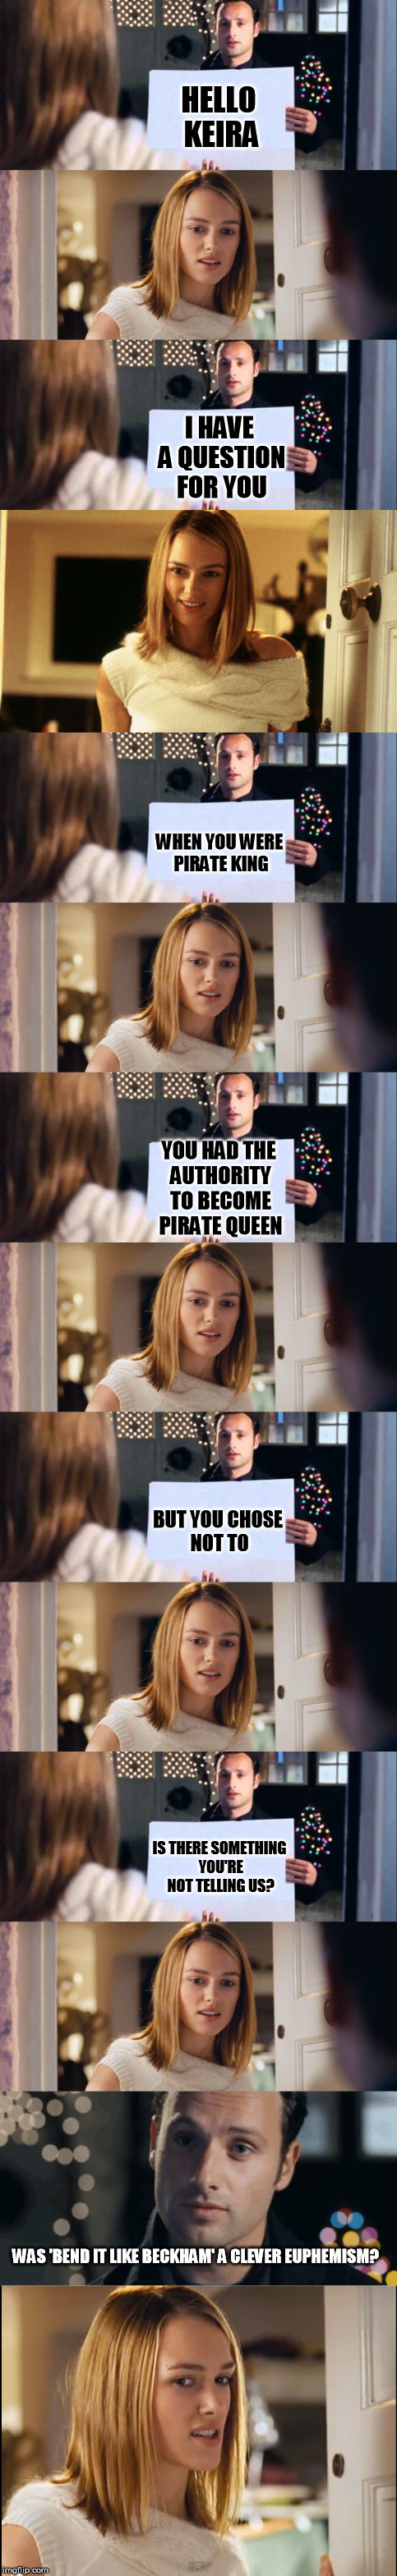 Andy Lincoln is a savage | HELLO KEIRA I HAVE A QUESTION FOR YOU WHEN YOU WERE PIRATE KING YOU HAD THE AUTHORITY TO BECOME PIRATE QUEEN WAS 'BEND IT LIKE BECKHAM' A CL | image tagged in memes,keira knightly,andy lincoln,loveactually | made w/ Imgflip meme maker